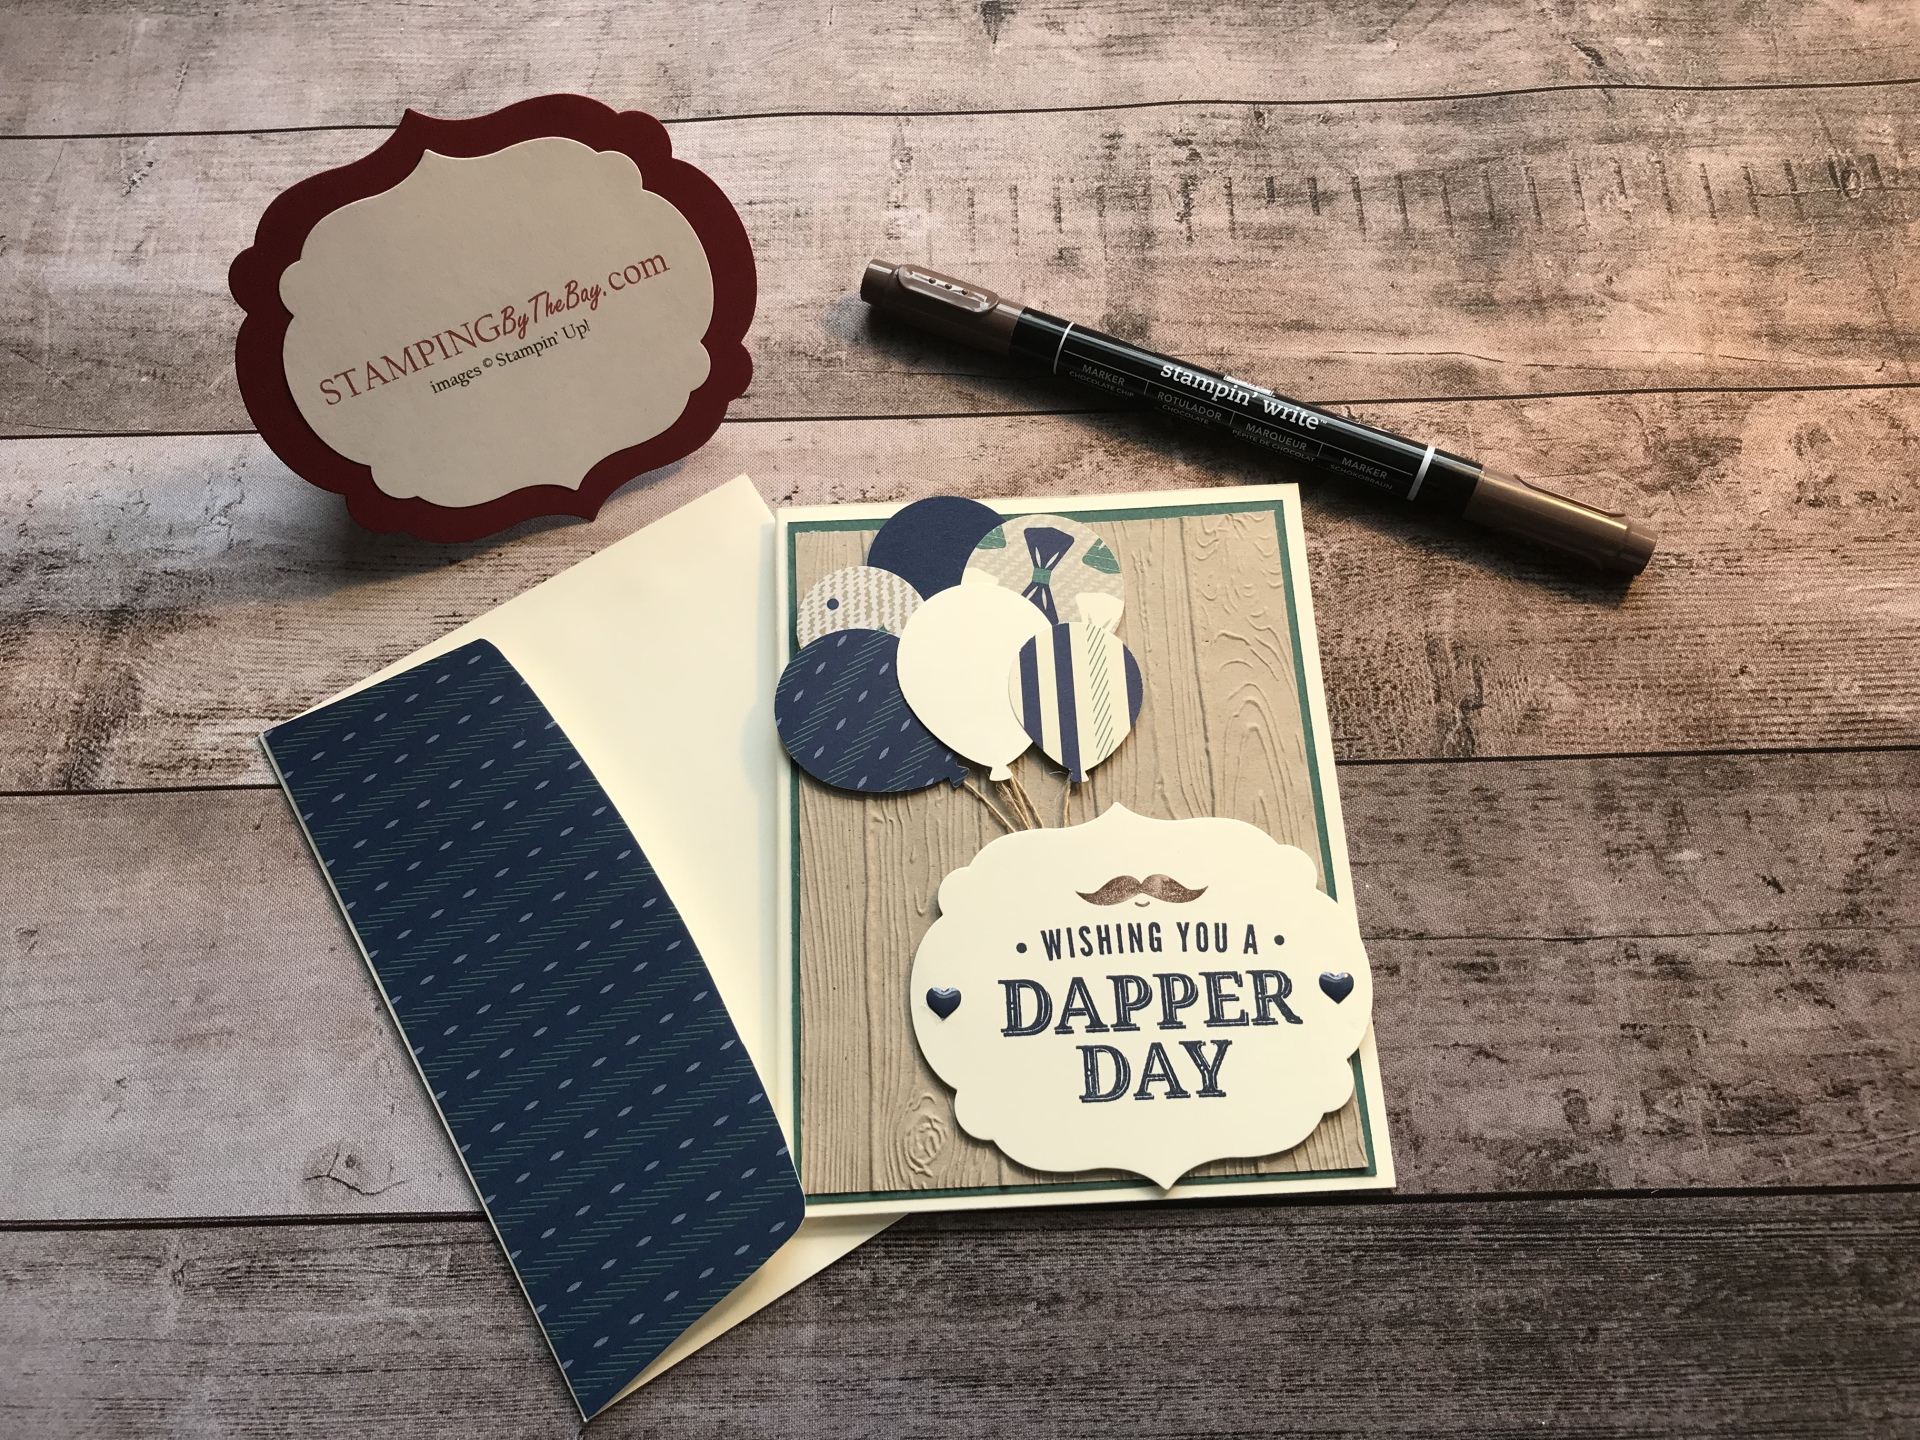 Have A Dapper Day!